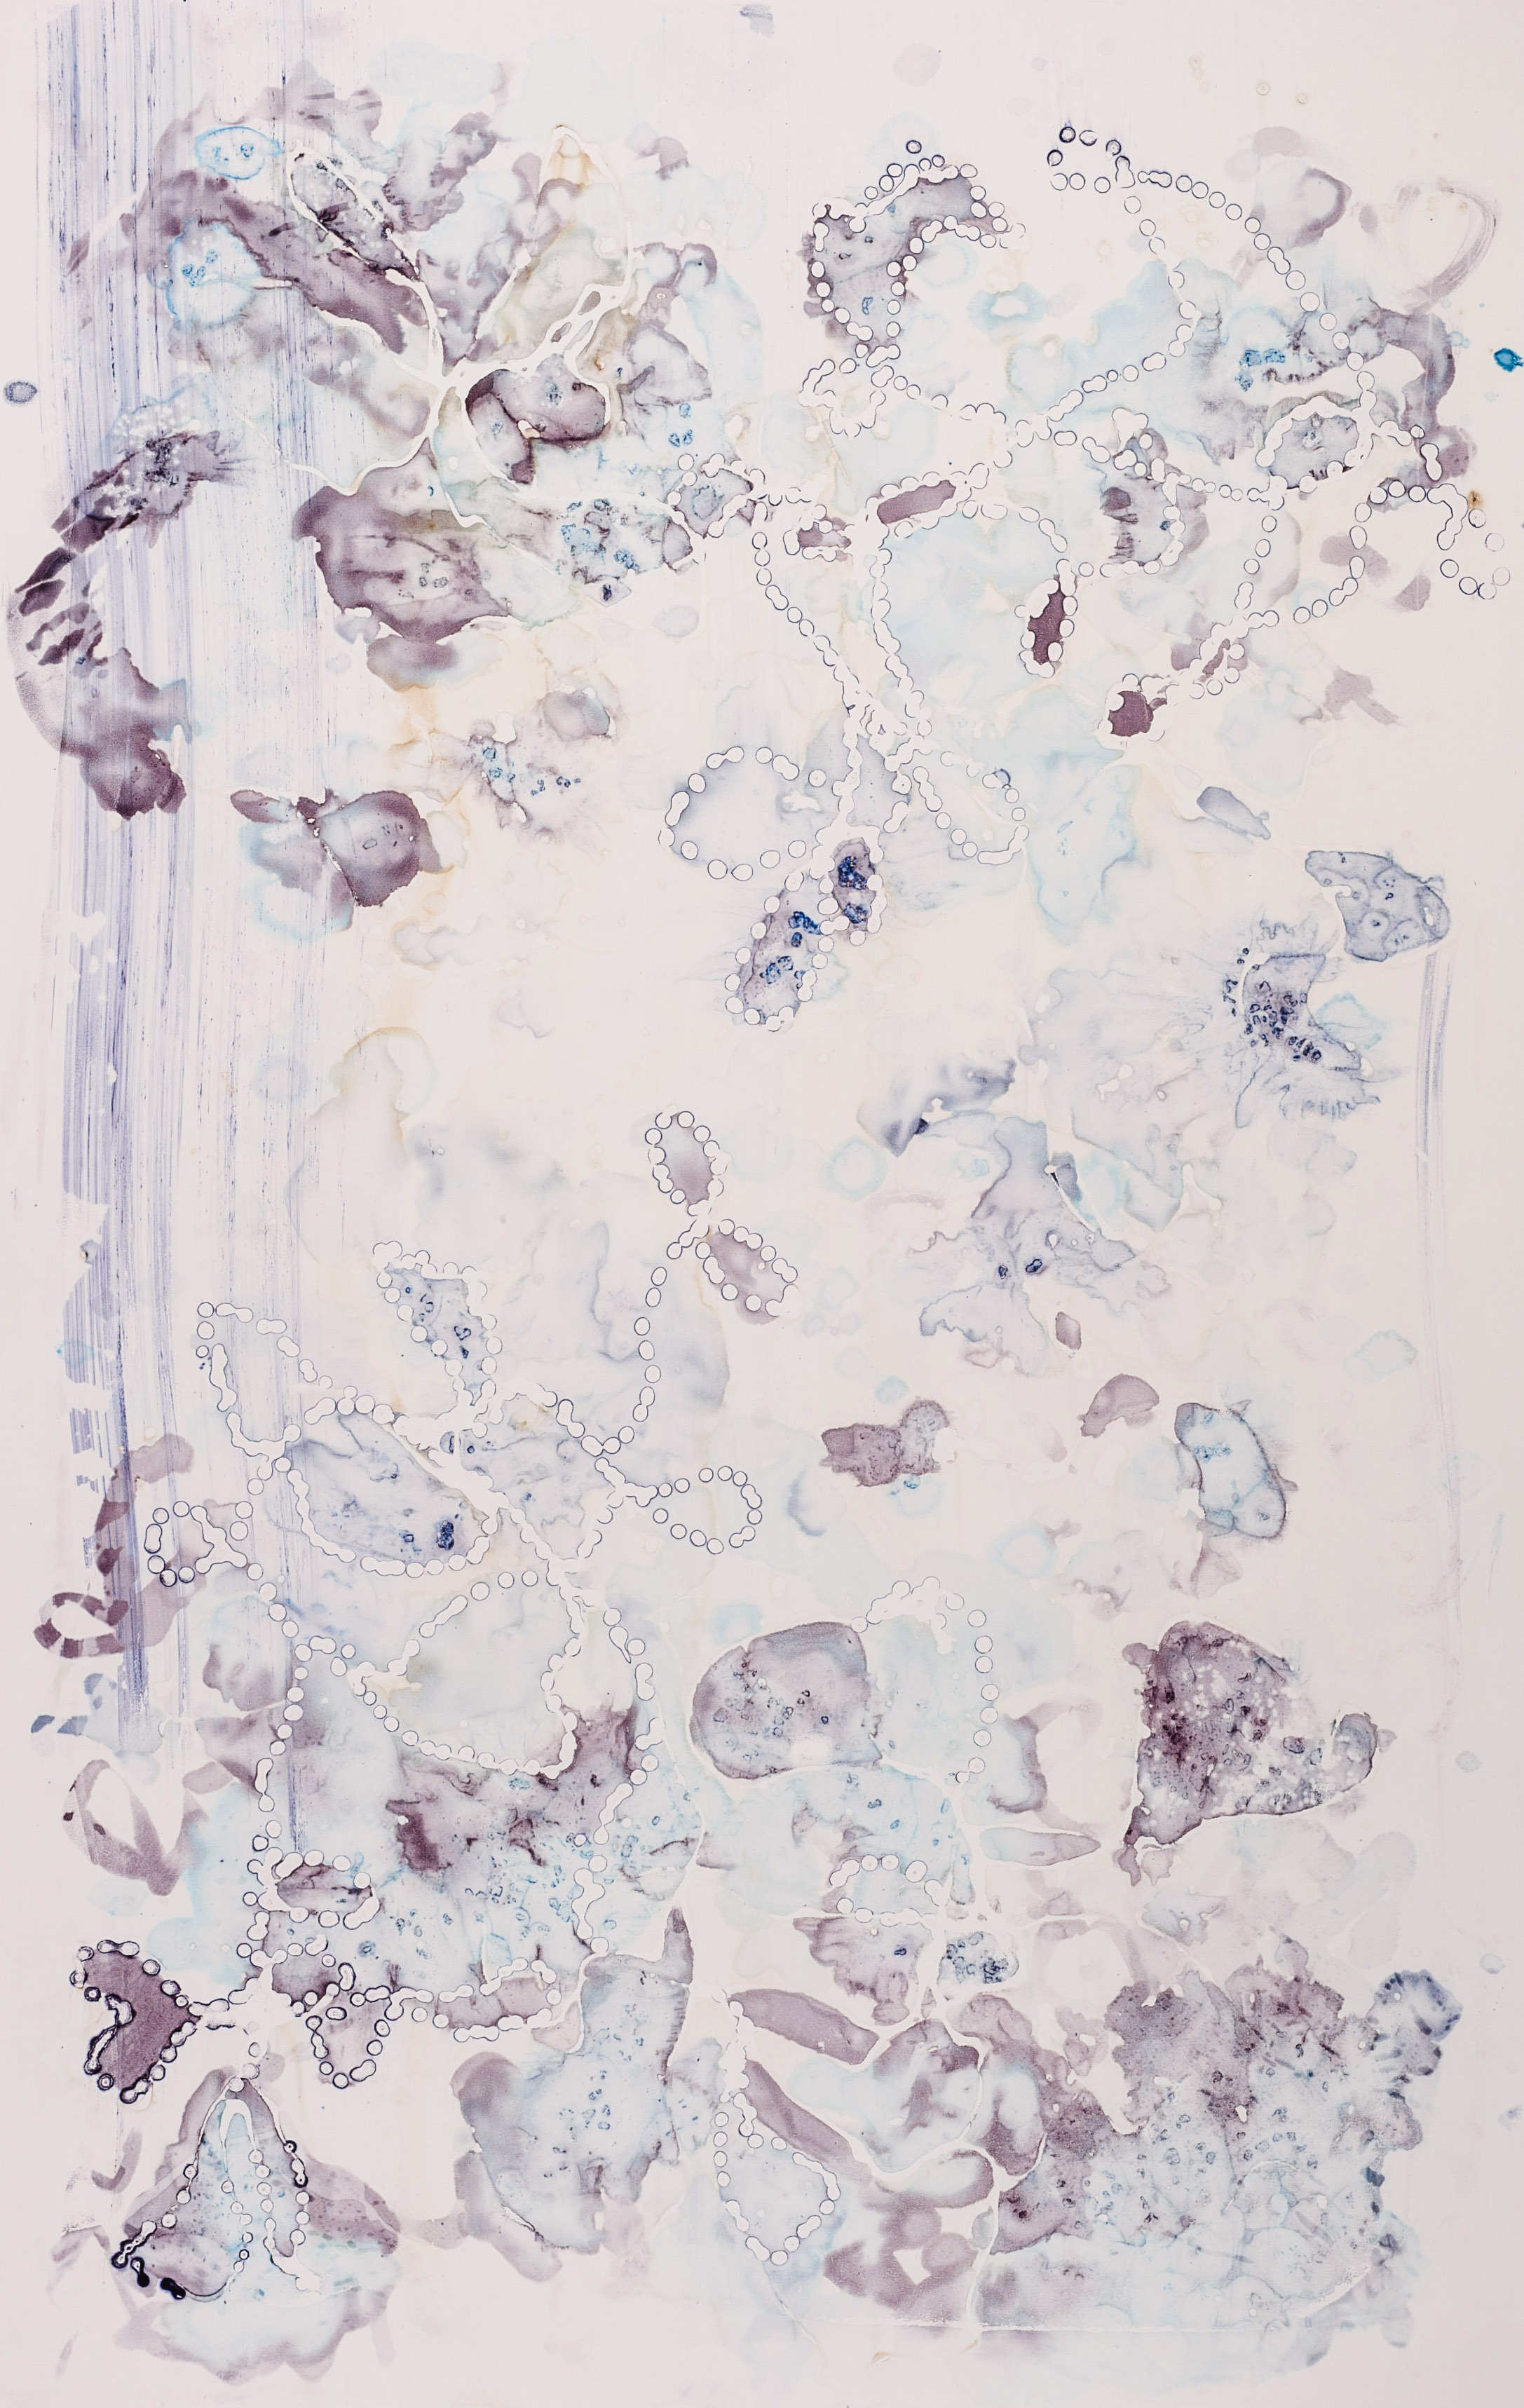 "Cultured Pearl III, 32"" X 50"", silkscreen painting on paper, 2016"